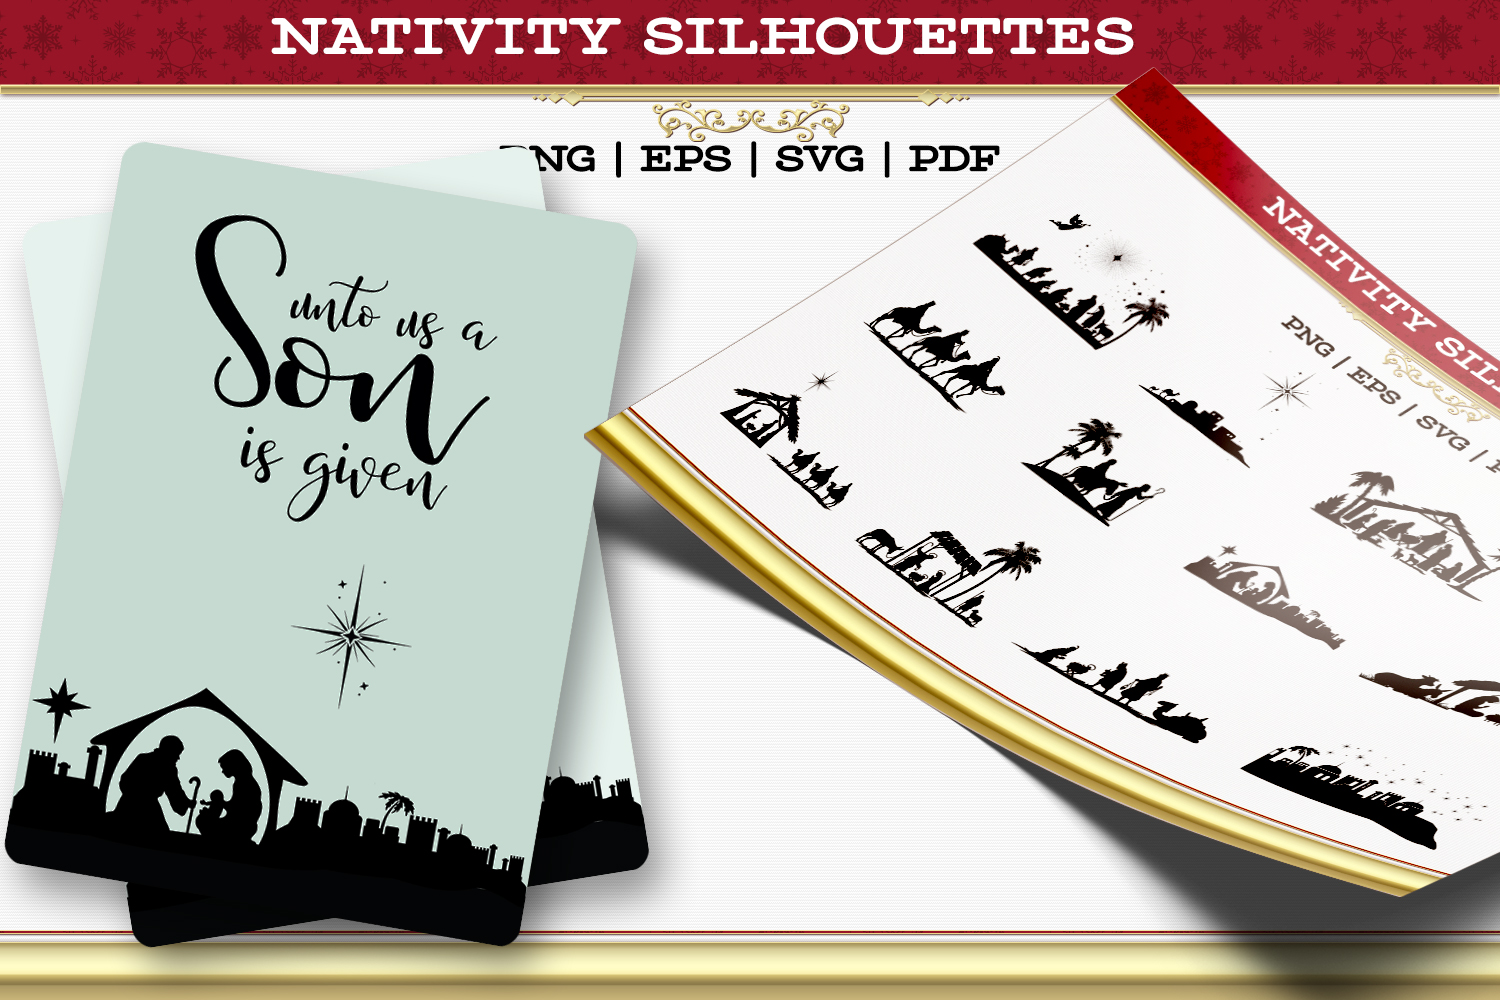 Nativity Silhouettes example image 1